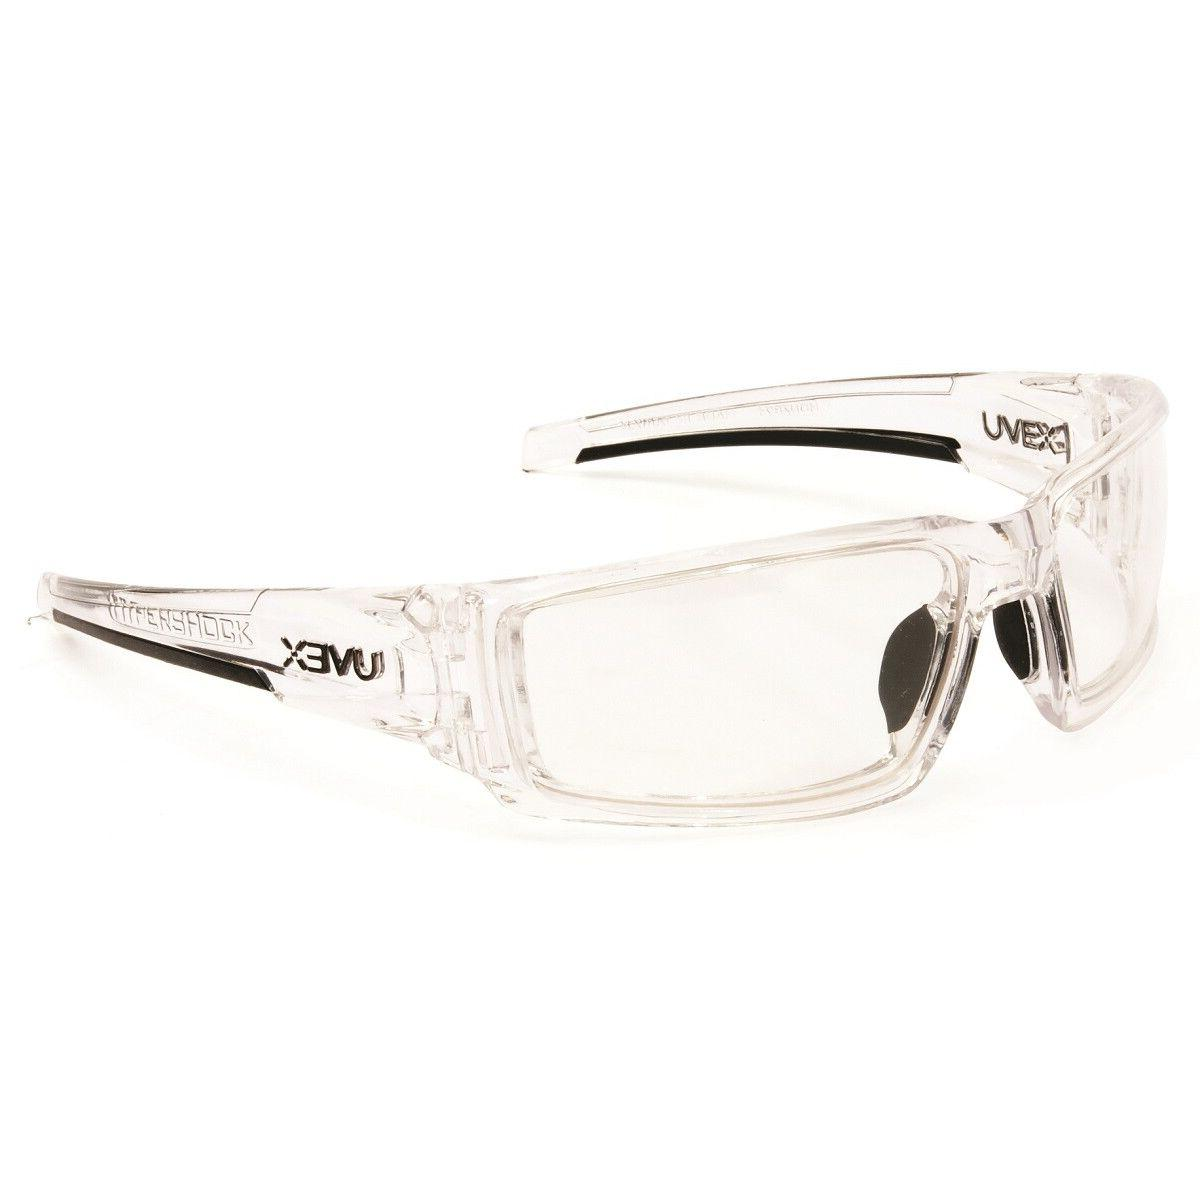 hypershock safety glasses clear ice frame clear